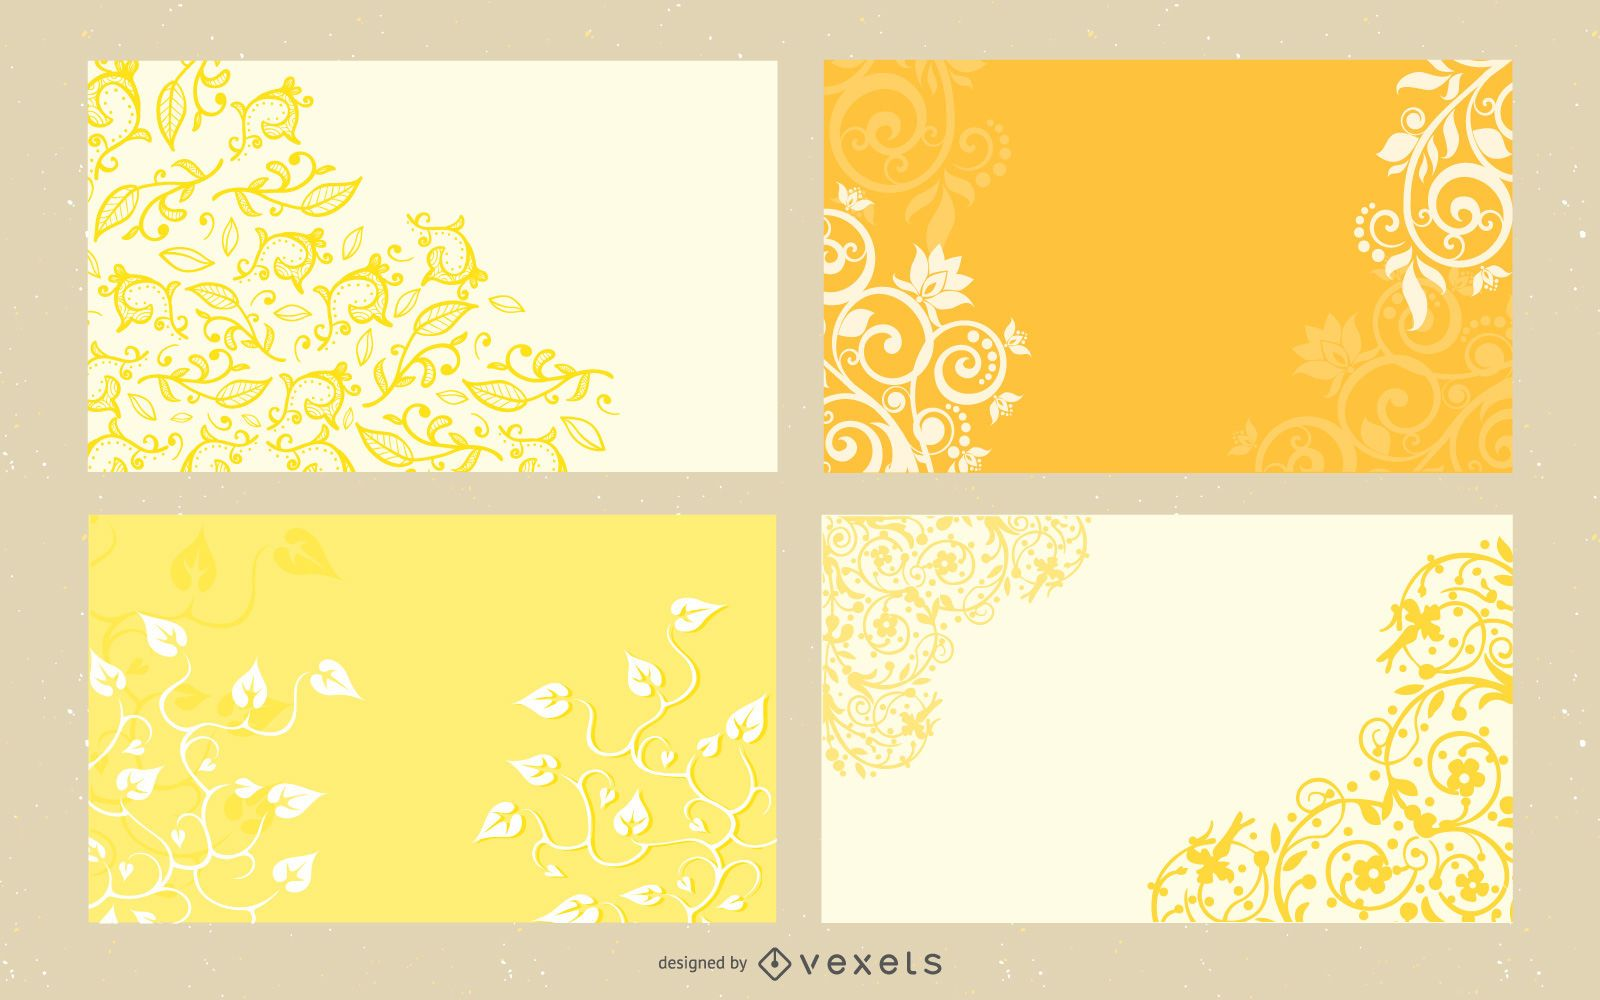 Curly Floral and Swirls Layout Pack